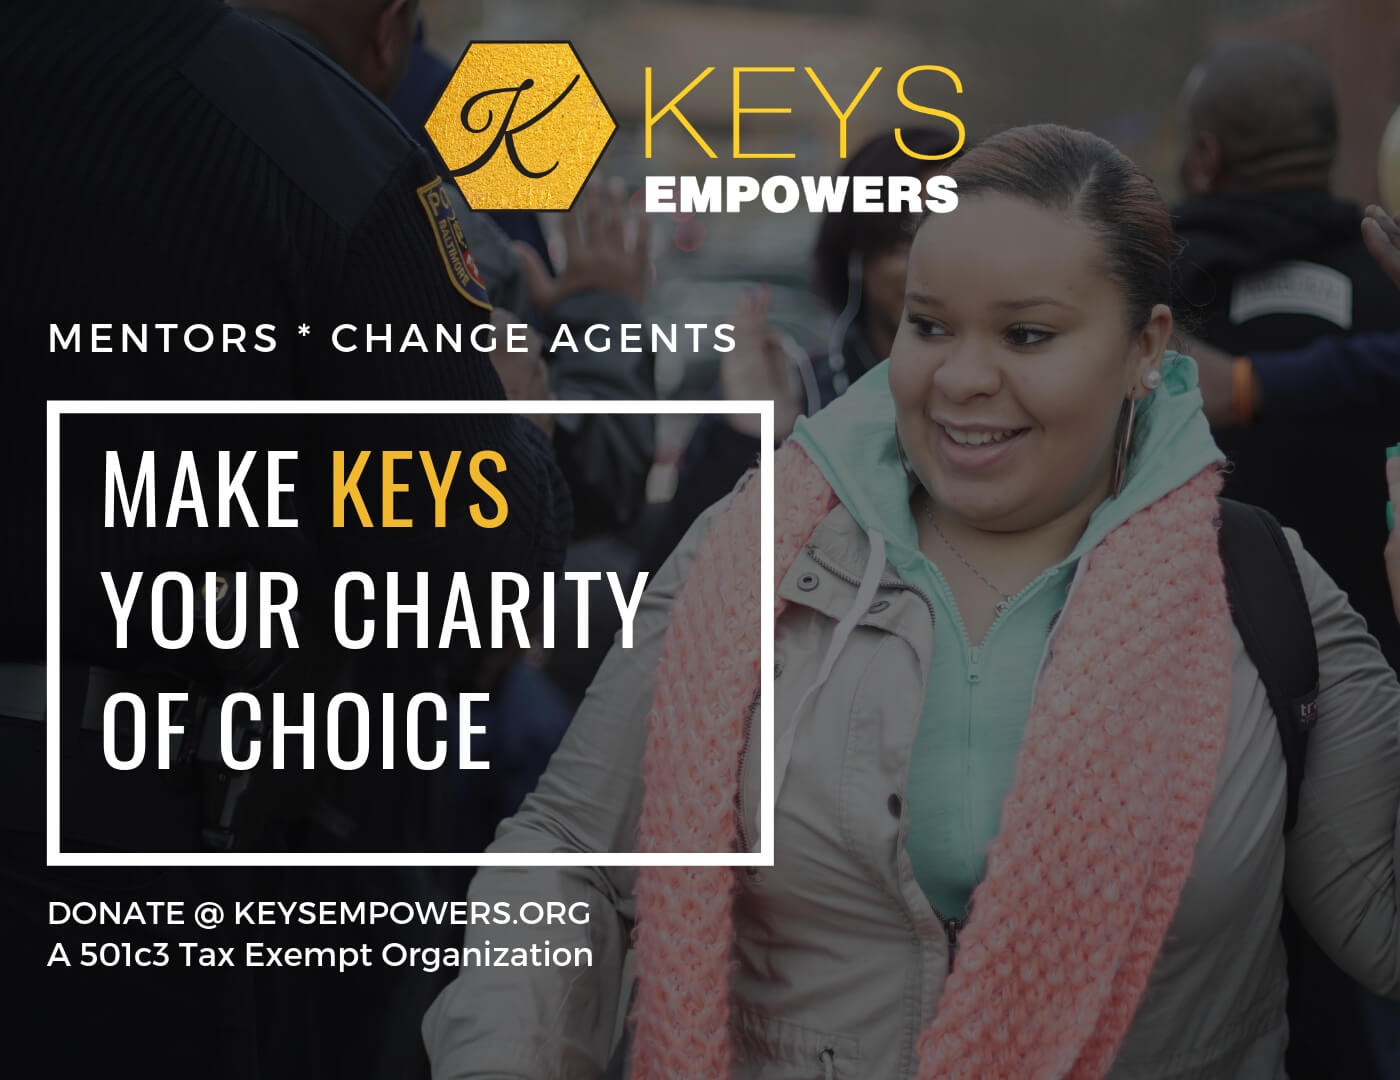 Make KEYS your charity of choice